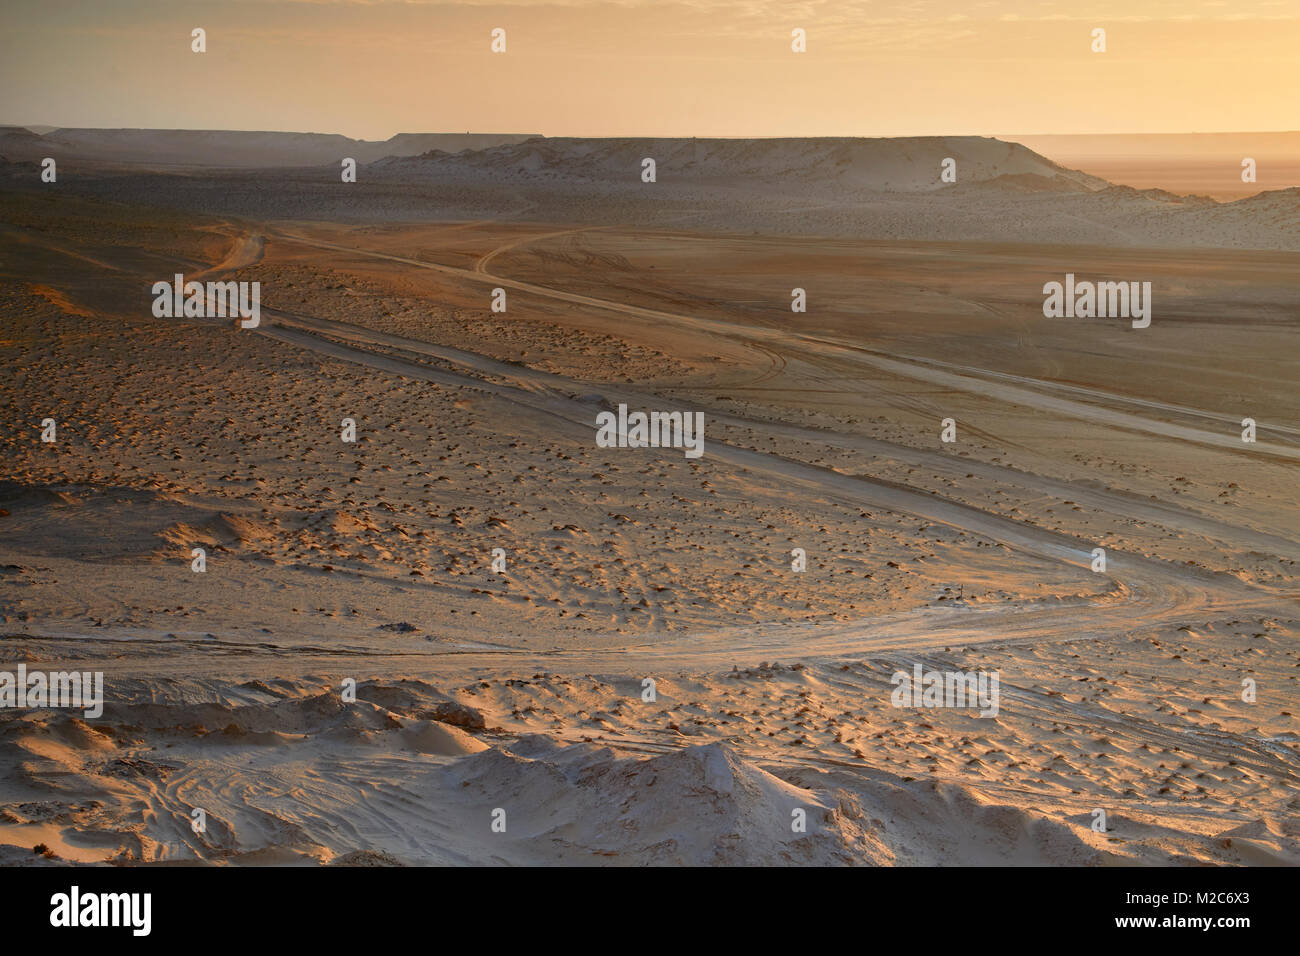 tracks in the desert sand, Western Sahara - Stock Image